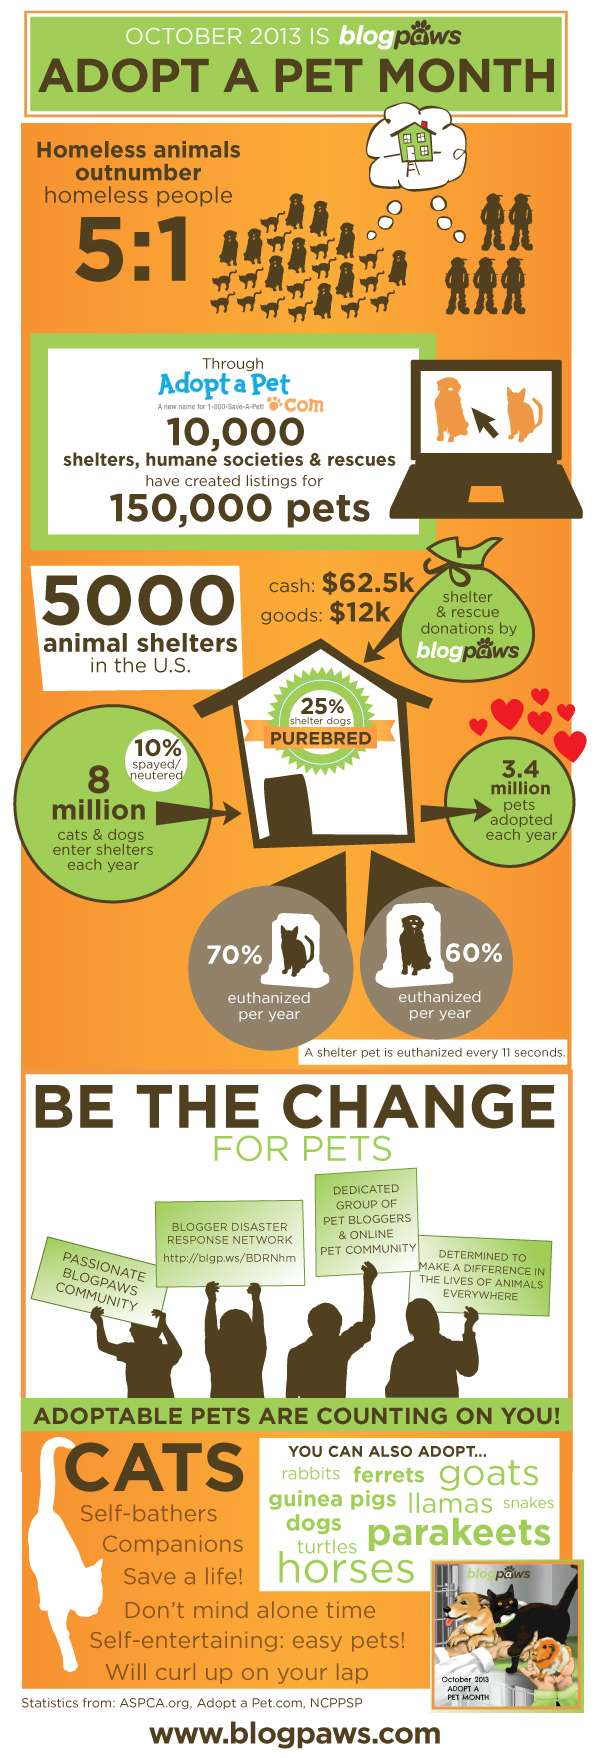 adoptapetmonth_blogpaws_1013